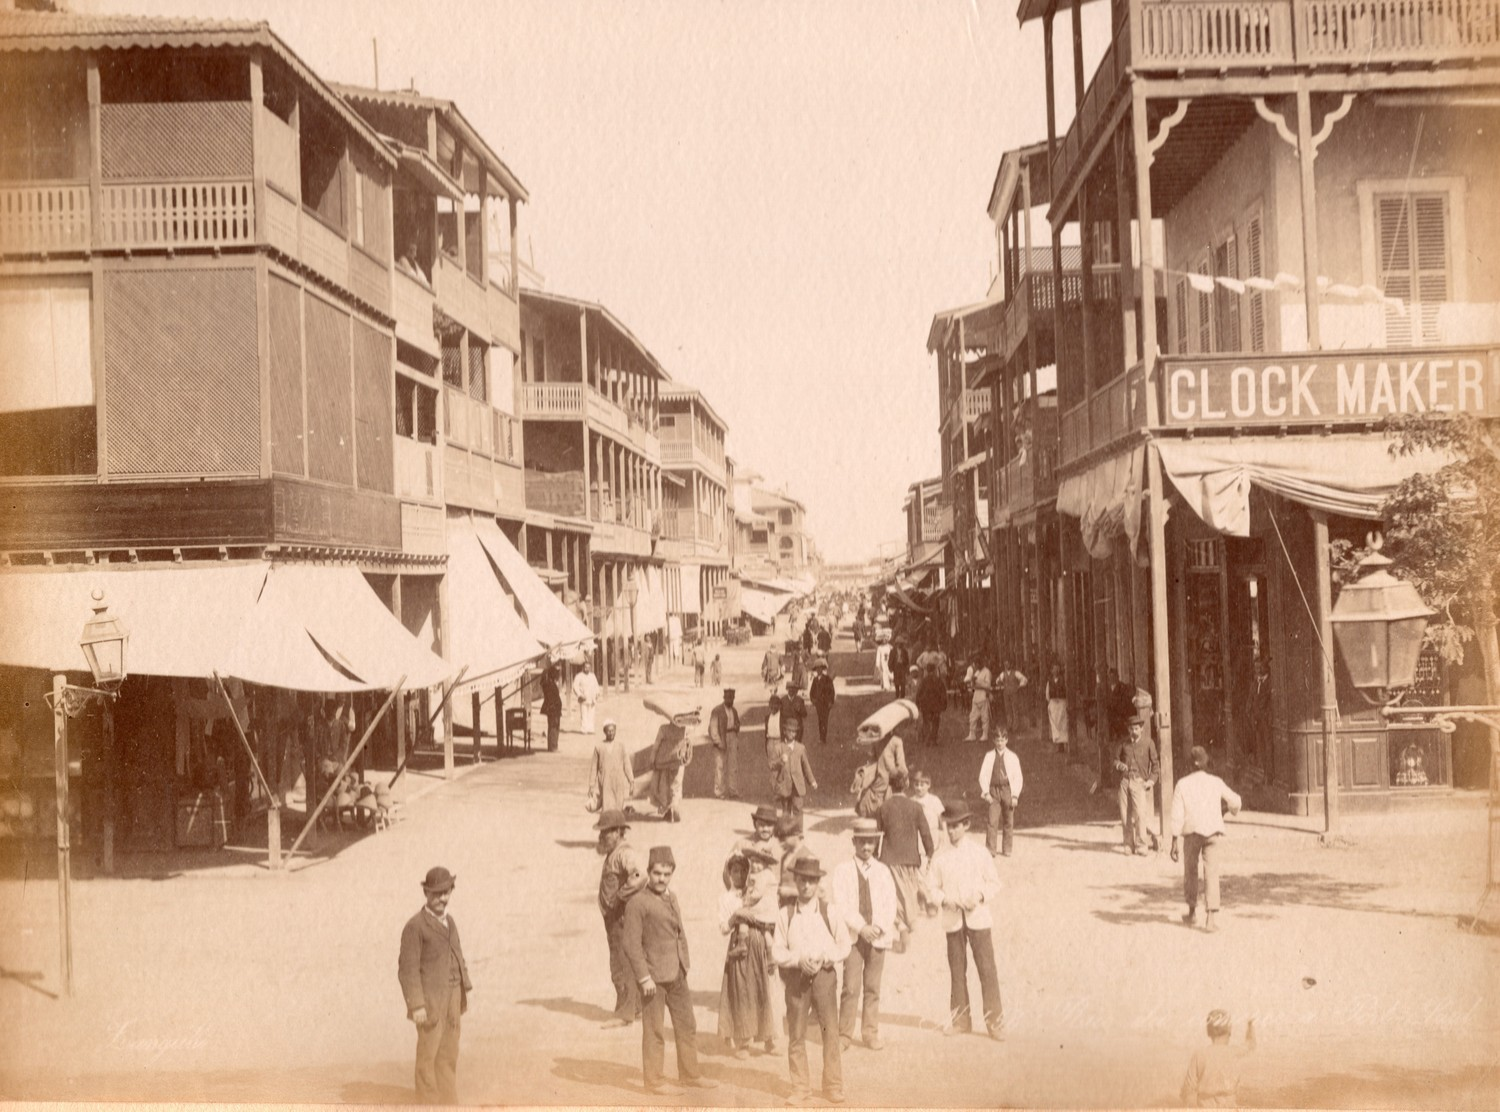 Photograph of a street in Port Said (Rue de Commerce), Egypt, late 19th century, showing people wih Arab, Turkish and Western styles of dress.